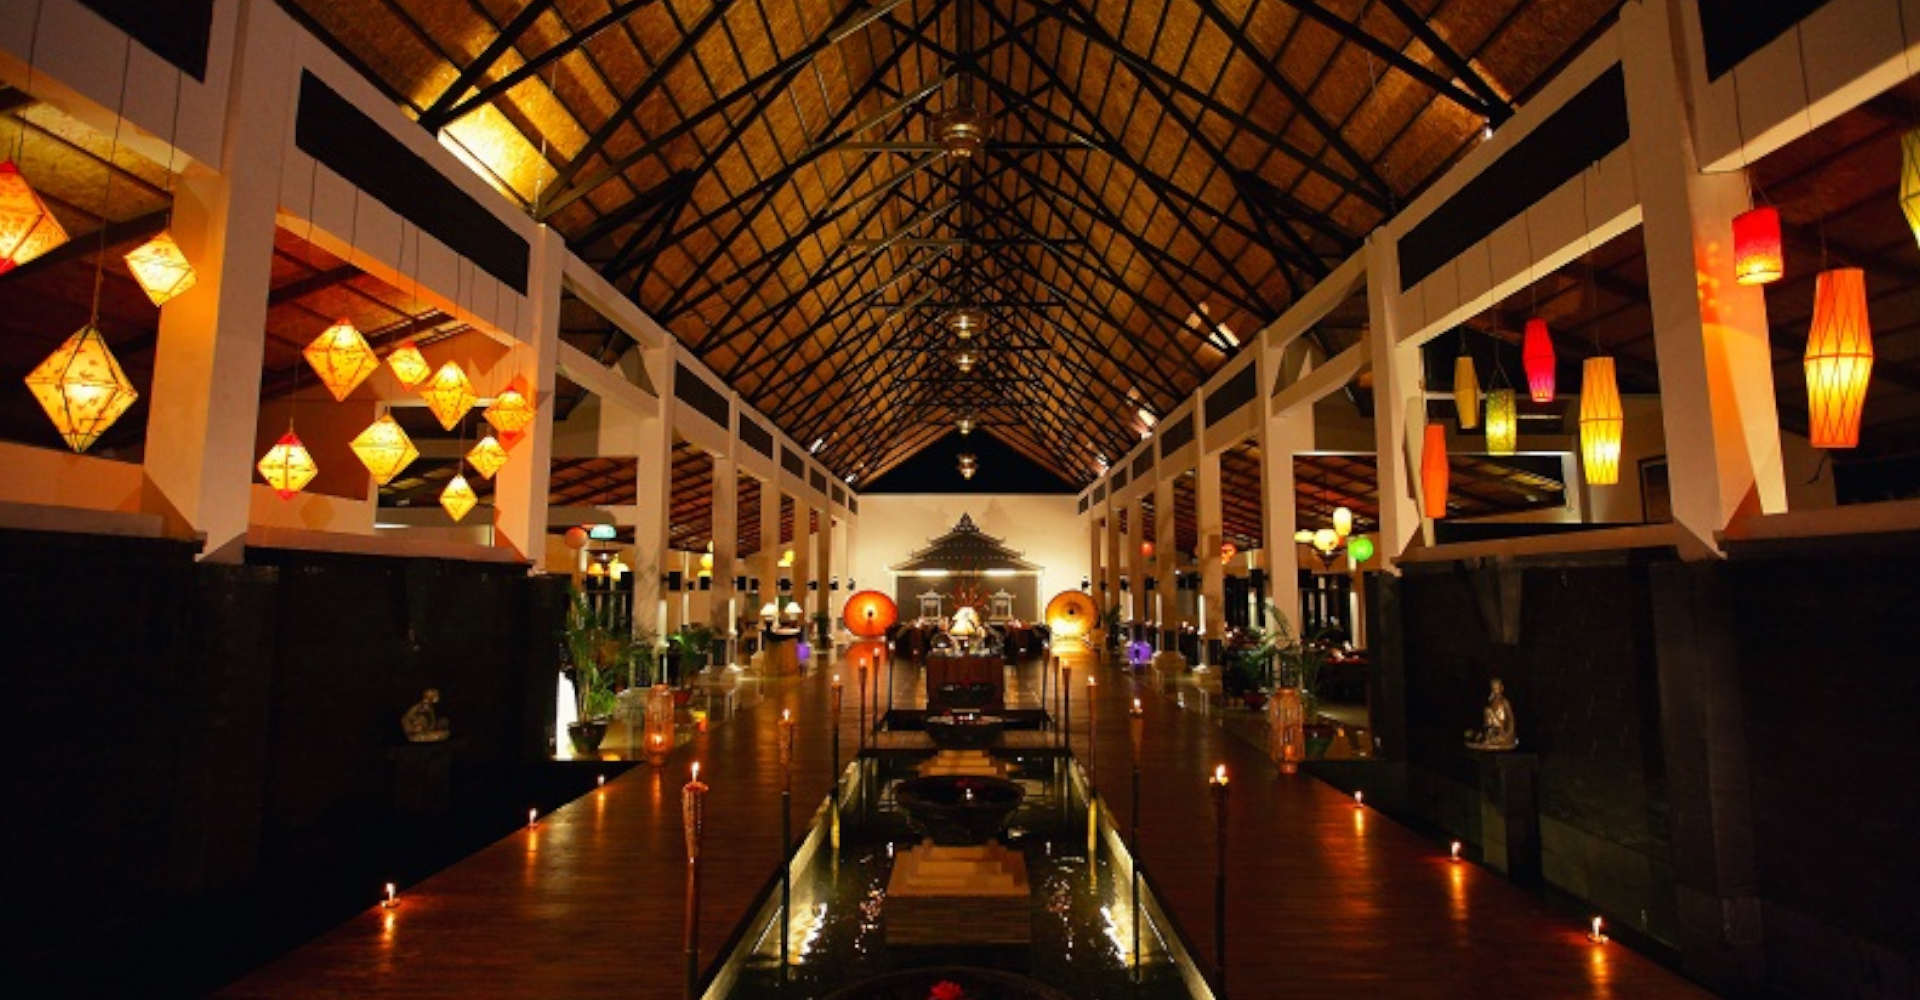 Amata Garden Resort, Inle Lake